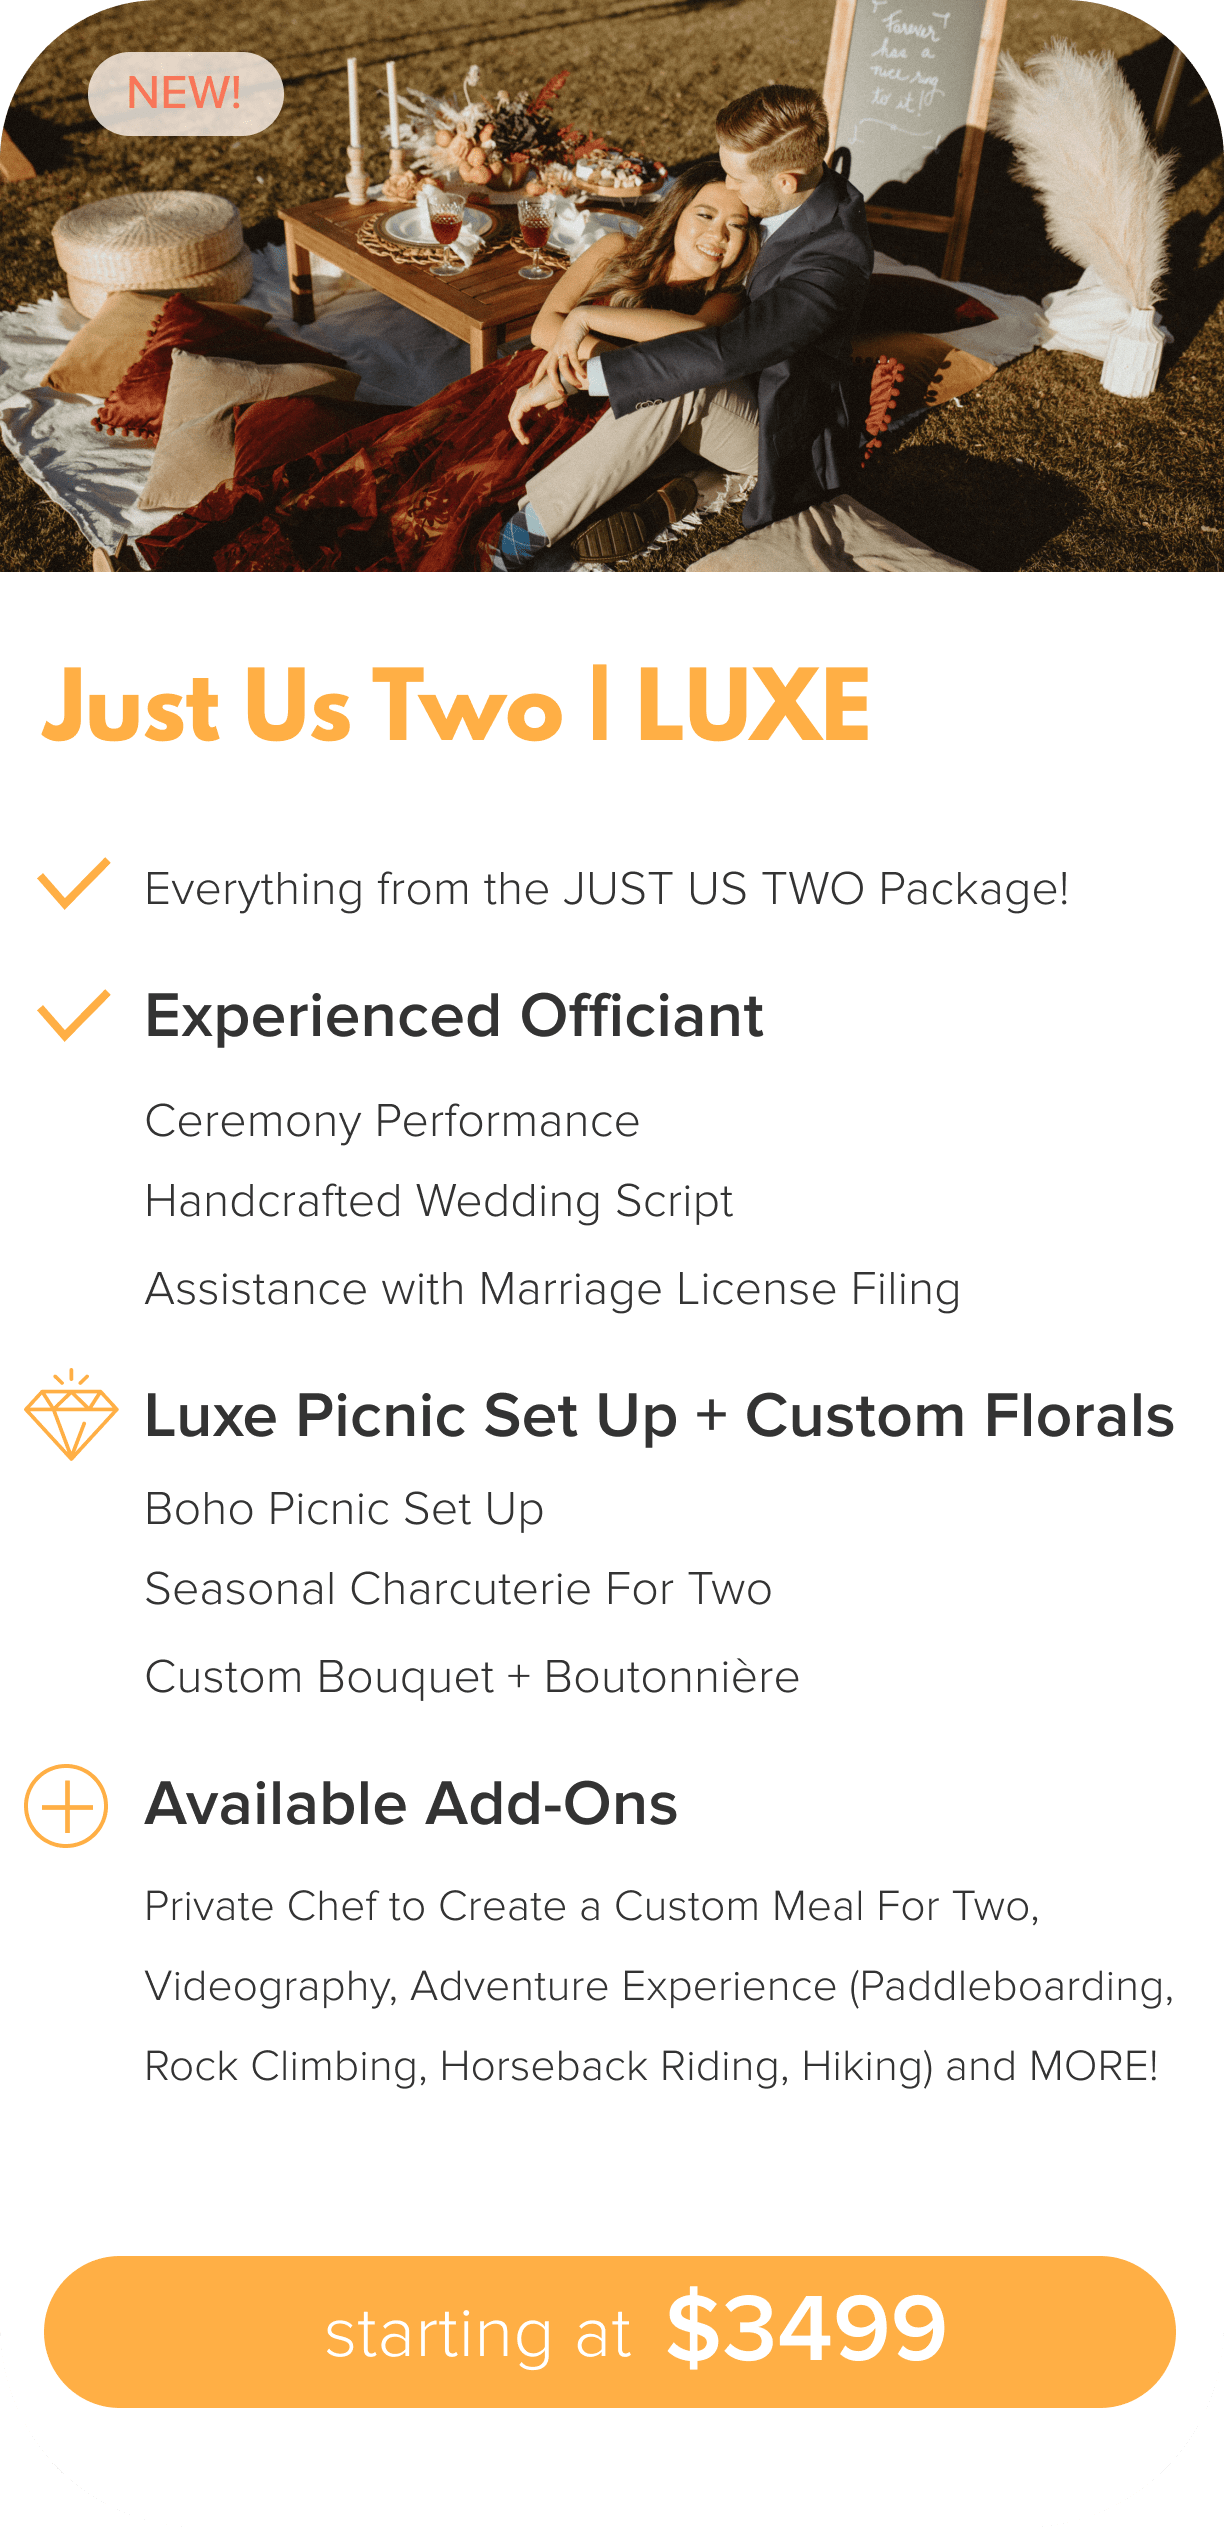 Just Two Lux Package